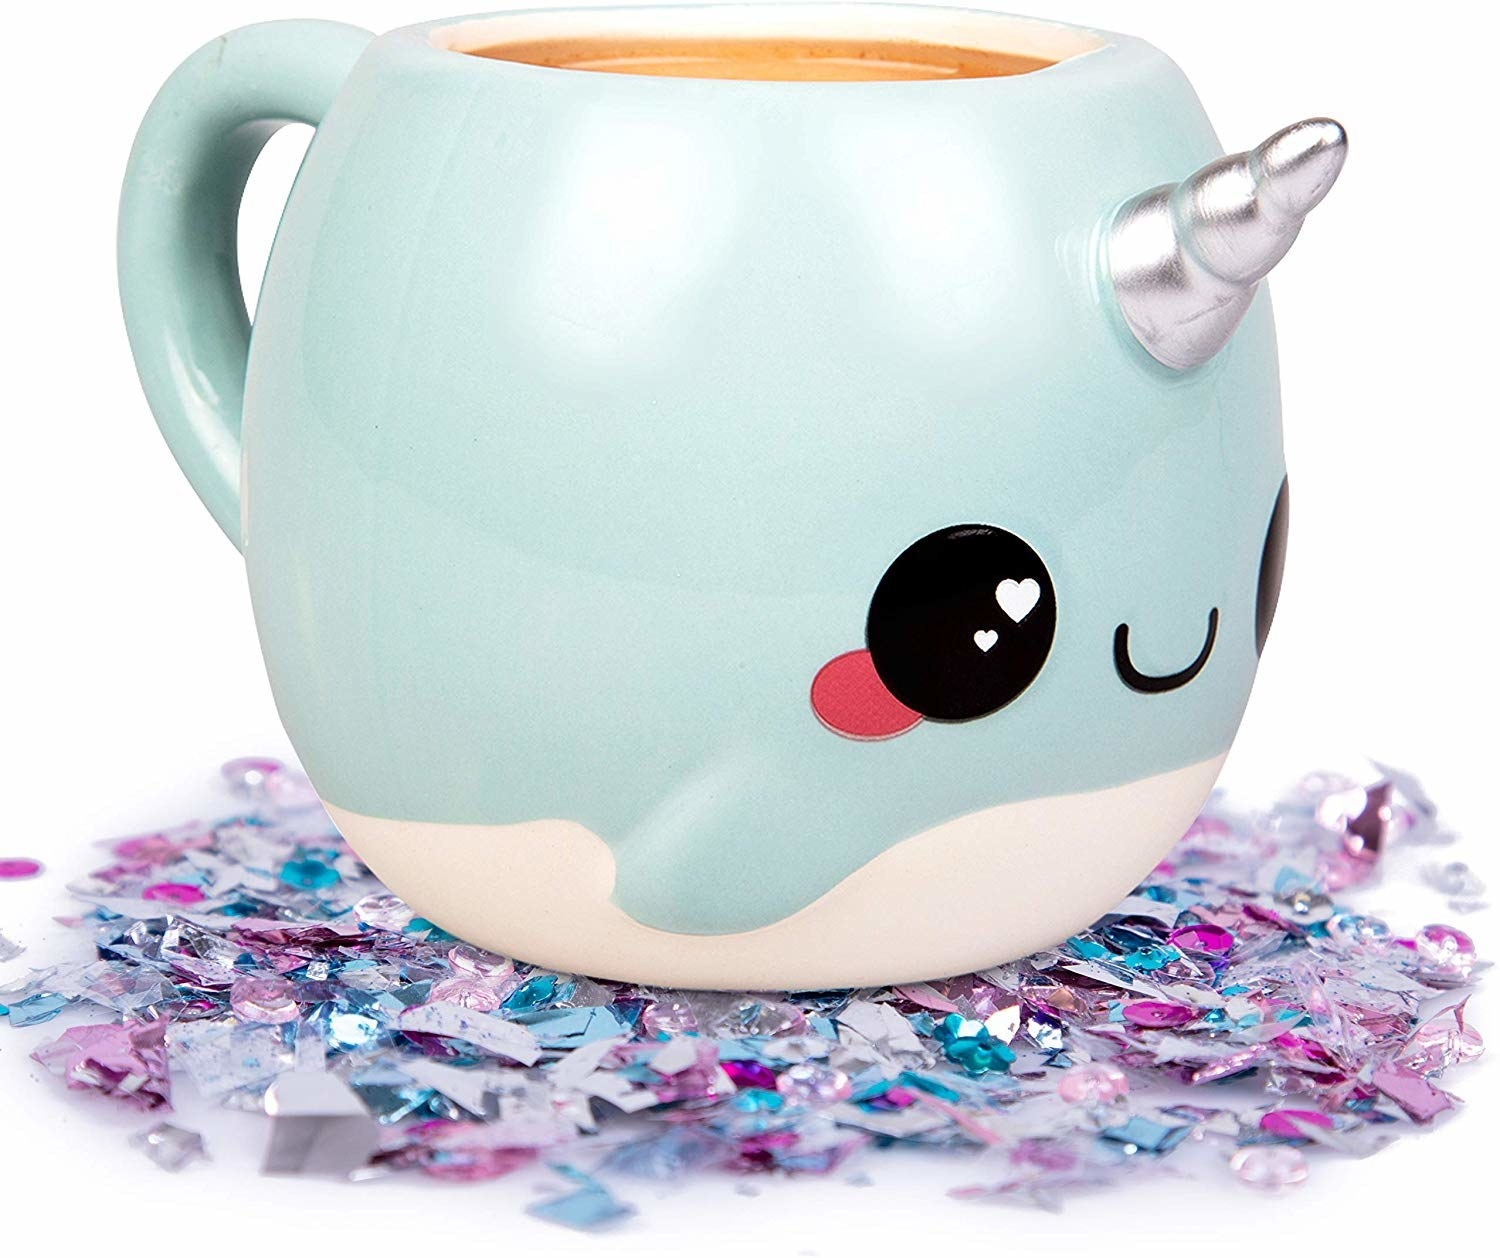 coffee mug shaped like light blue cartoon narwhal with a silver unicorn horn and hearts in its eyes